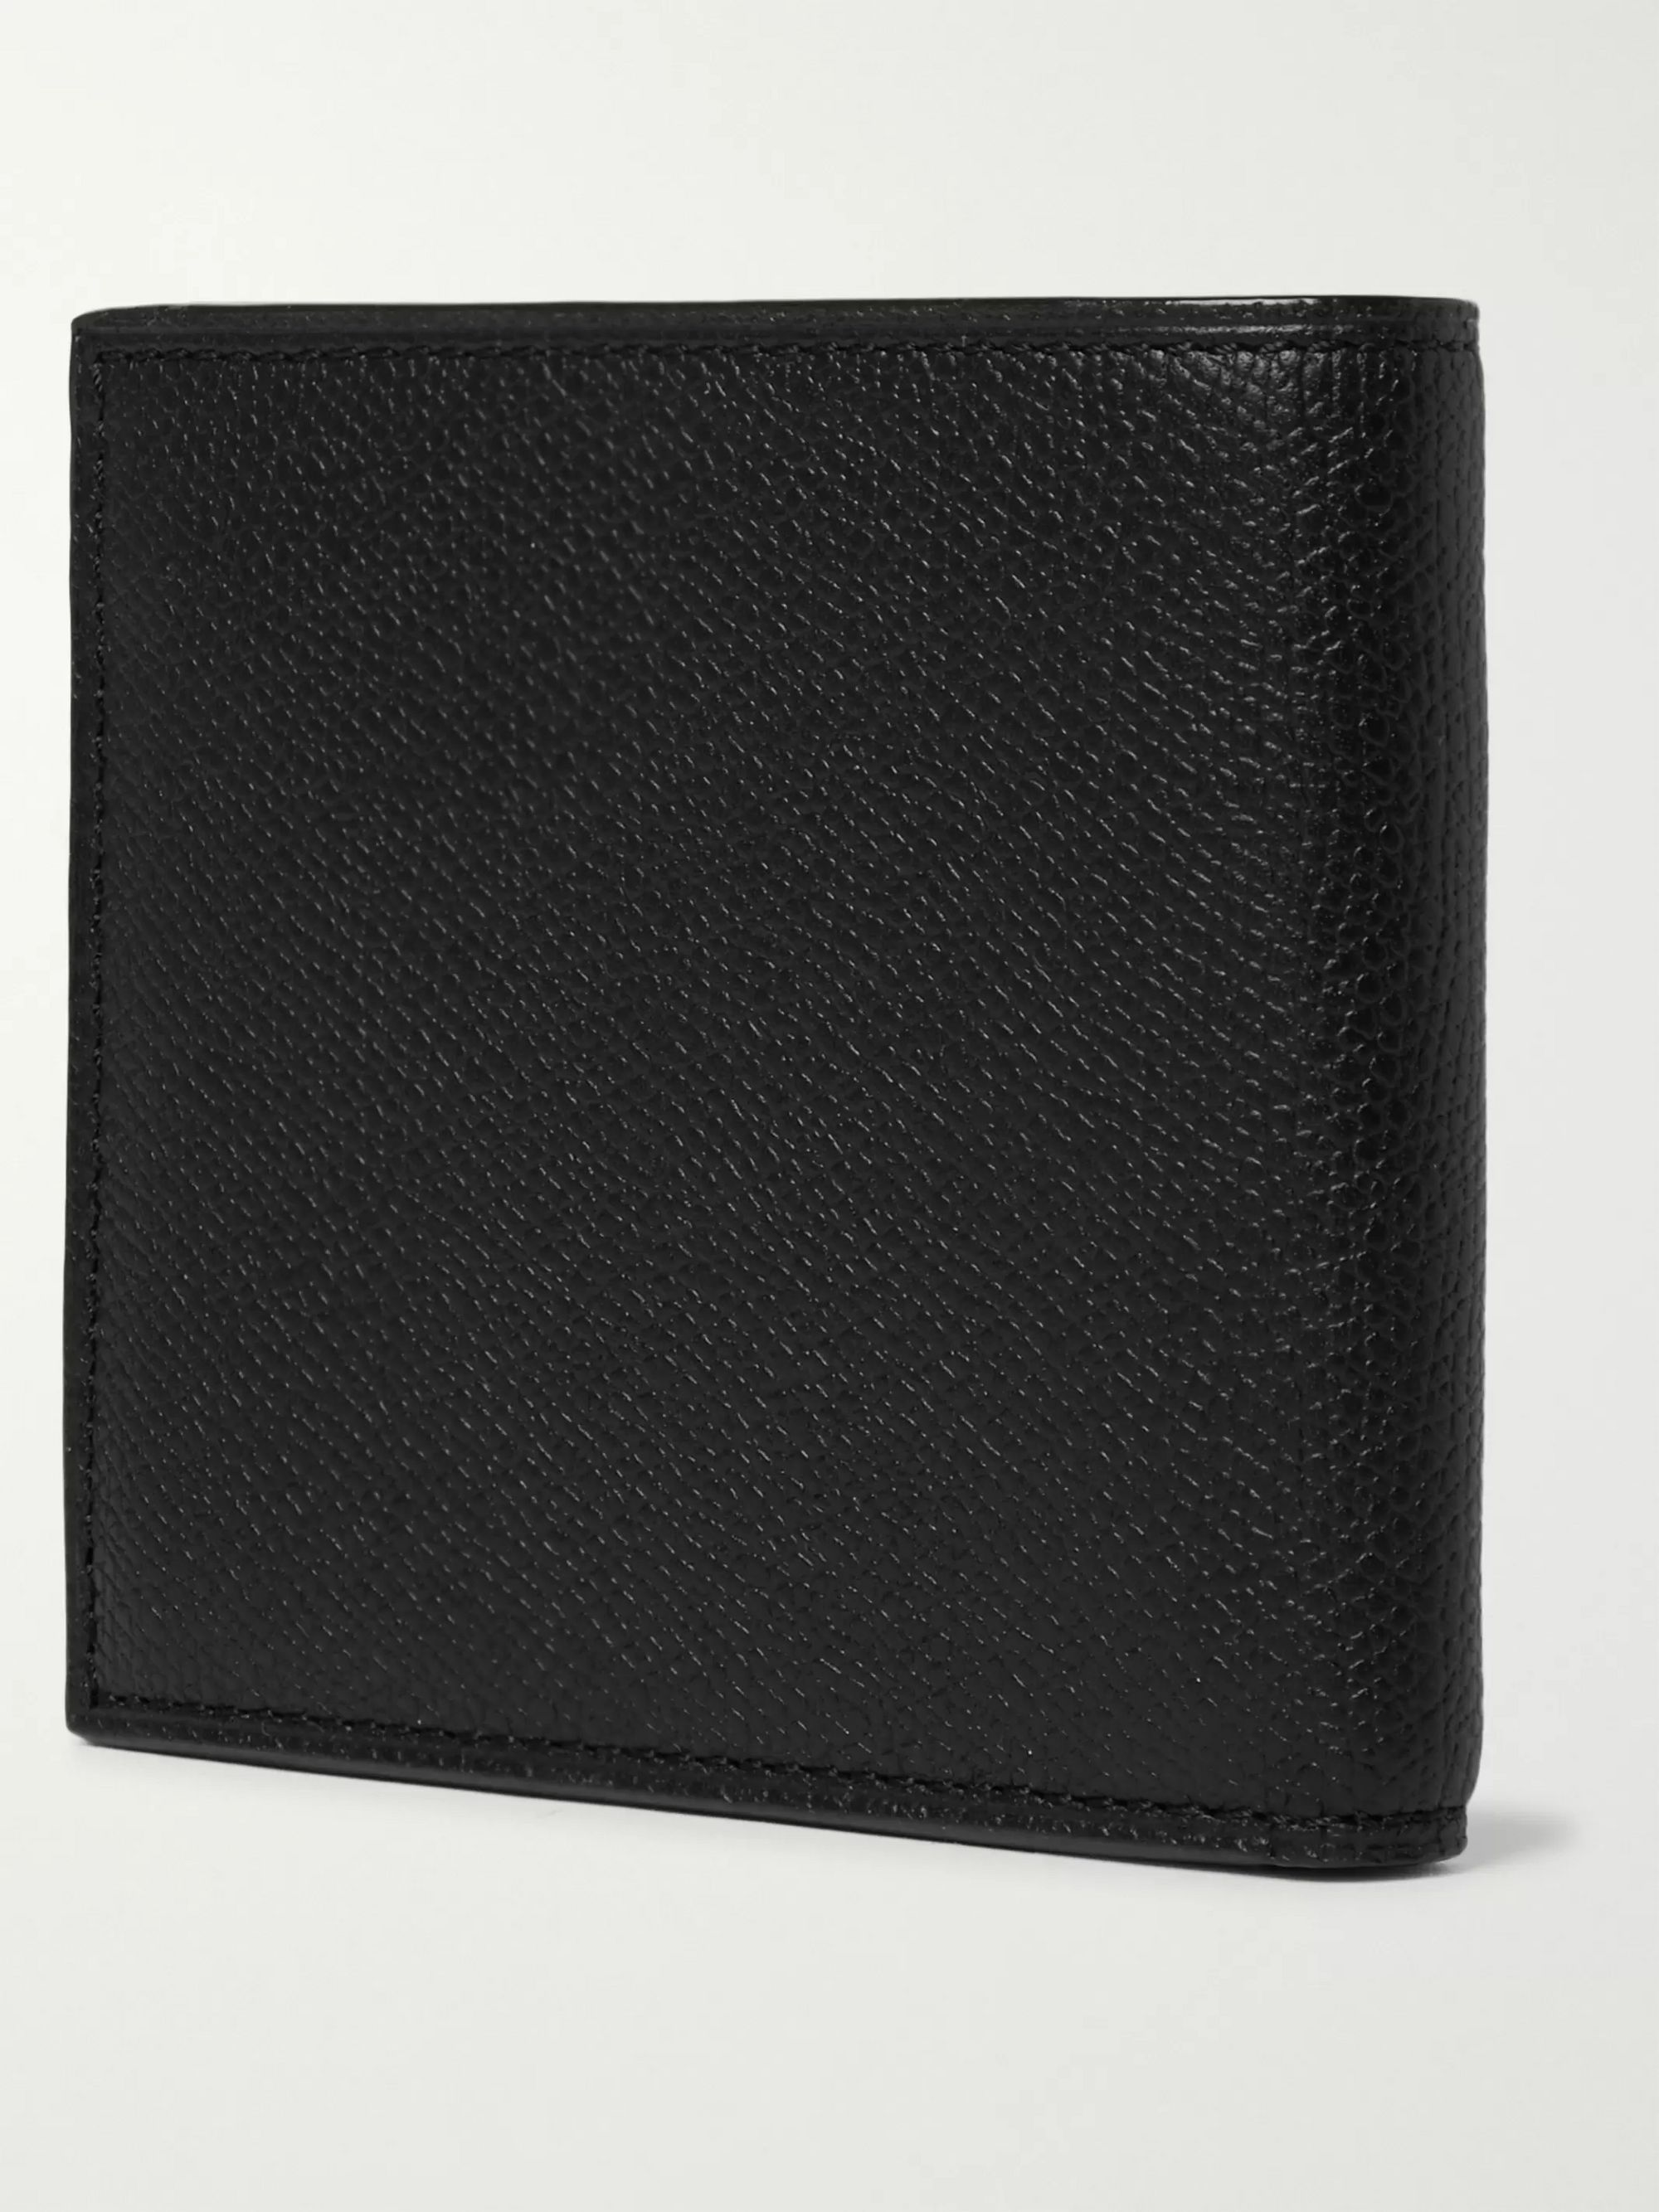 Valextra Pebble-Grain Leather Billfold Wallet